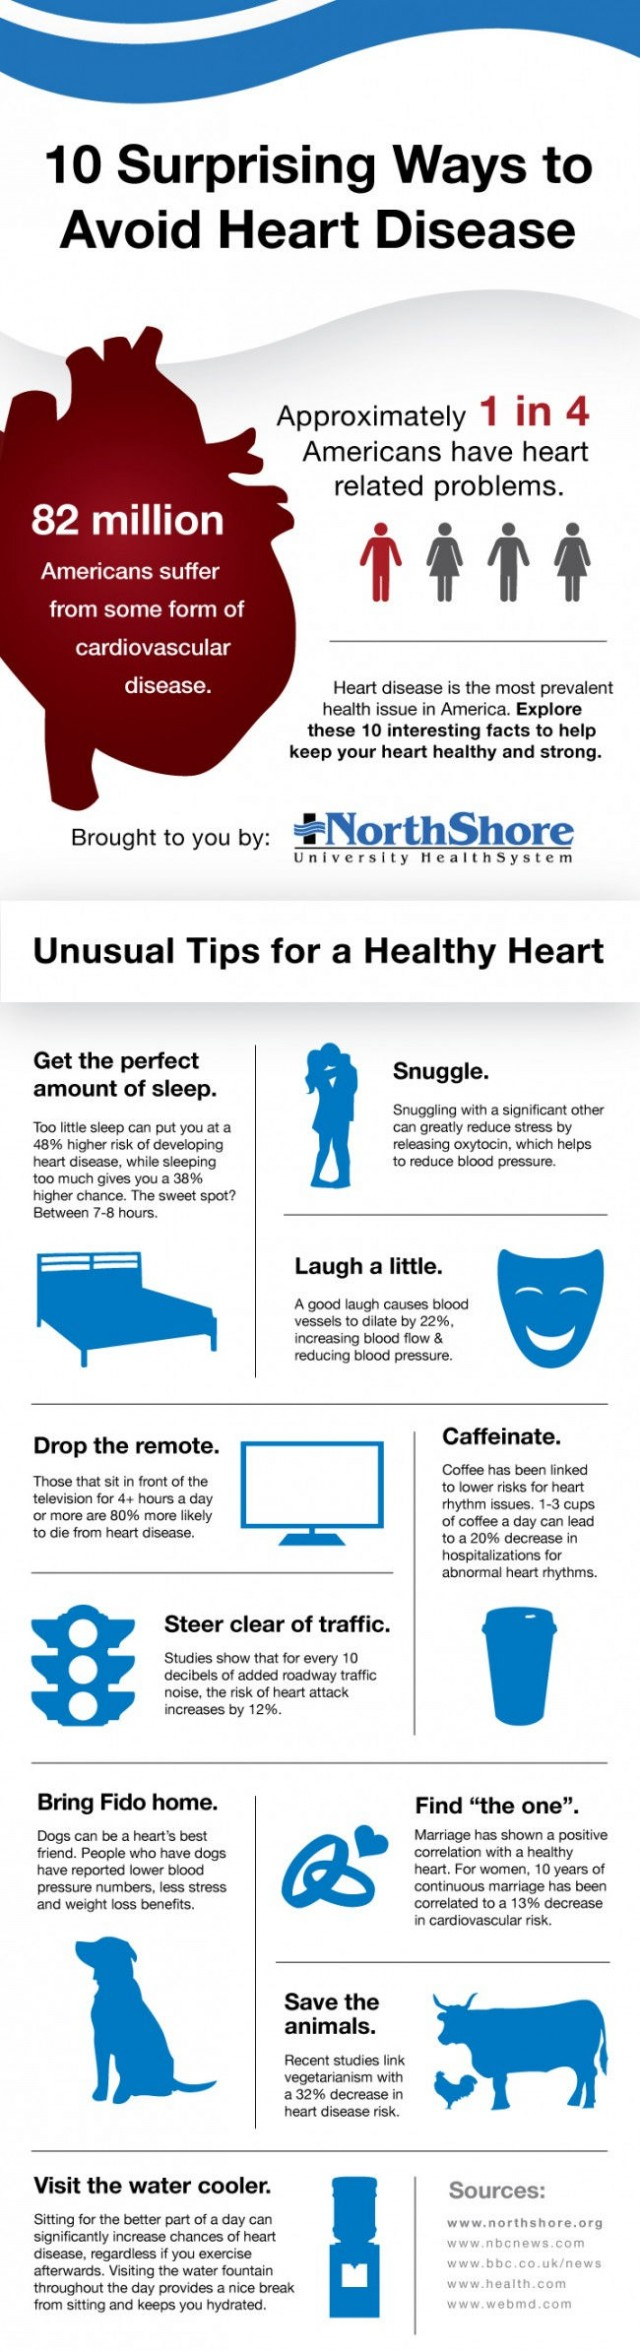 Prevent Heart Disease with these Healthy Tips